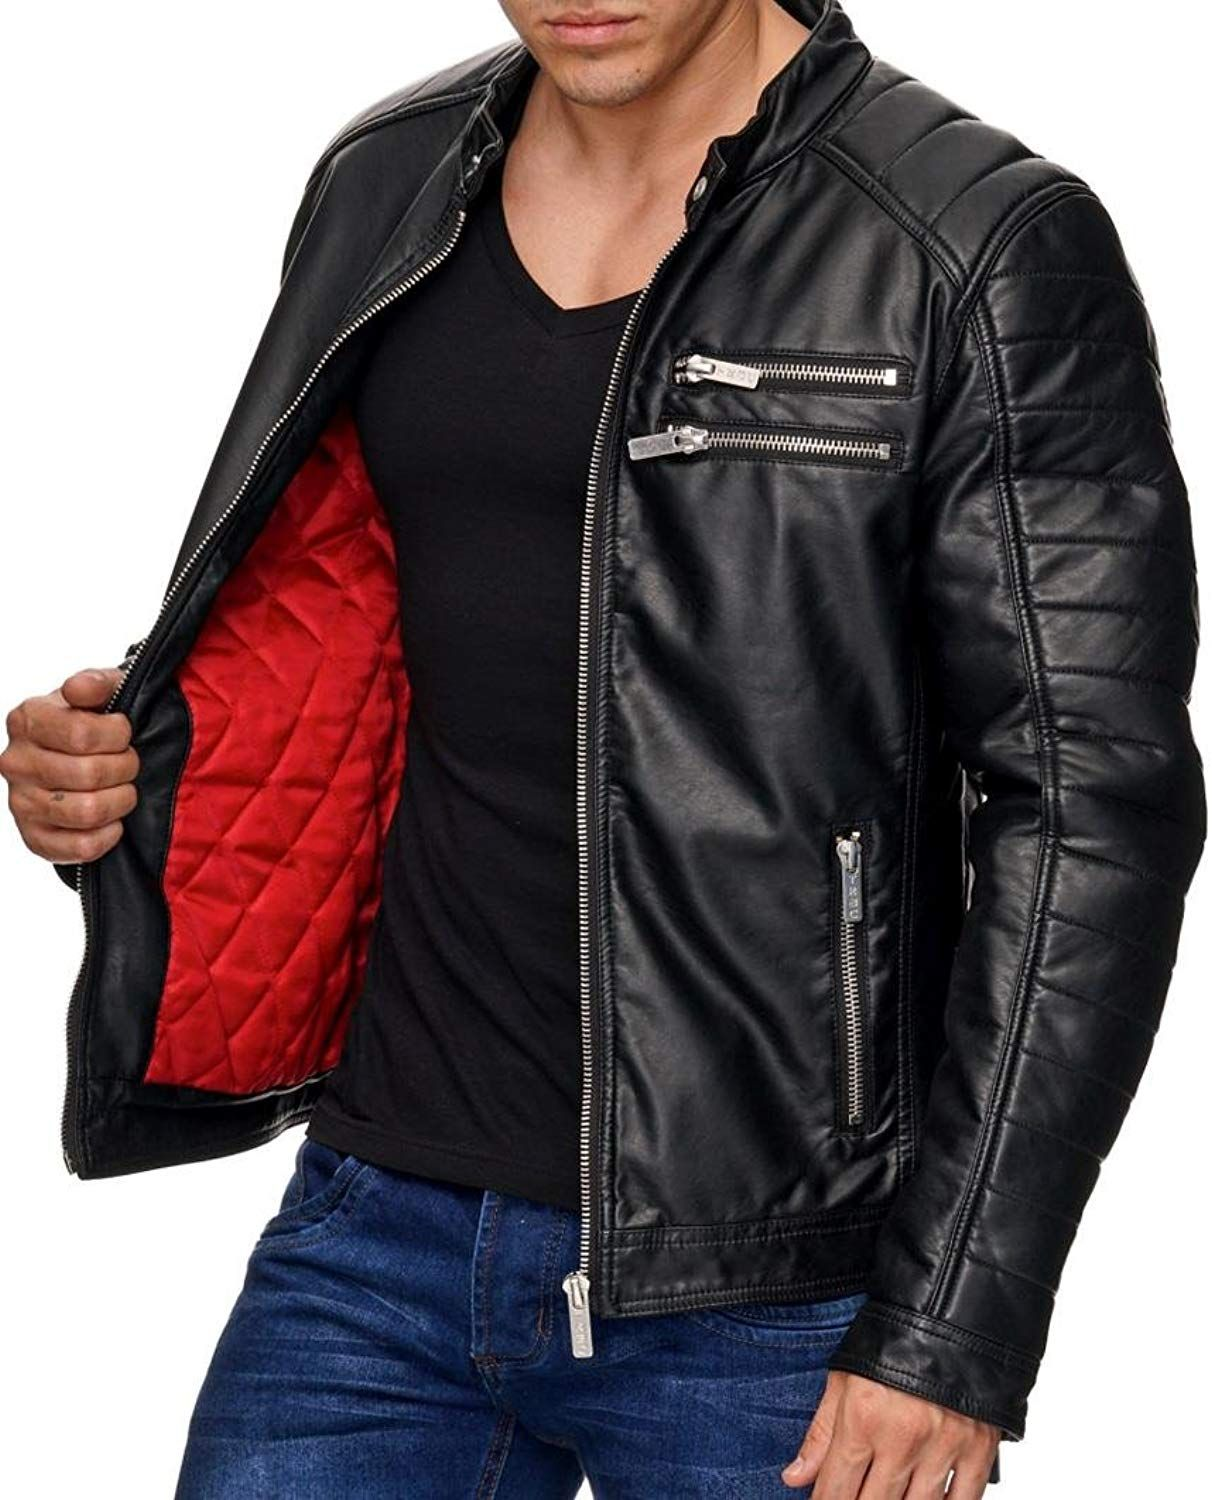 Red Bridge Herren Kunstleder Jacke Biker Look Lederjacke